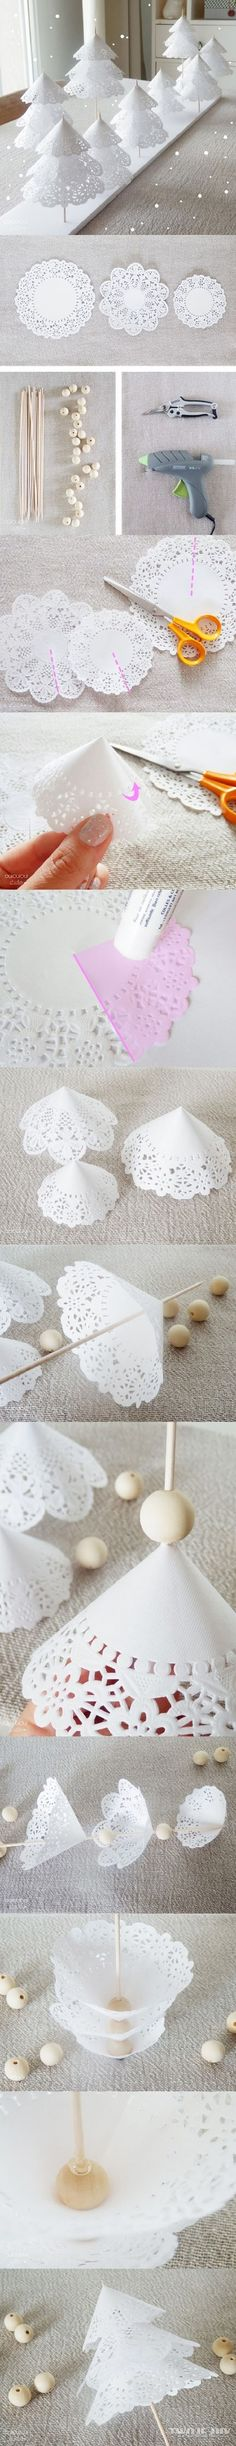 25 Adorable Christmas Projects that you can do! I love these paper doilies Christmas trees and they are super easy to make. Cute centerpiece idea!